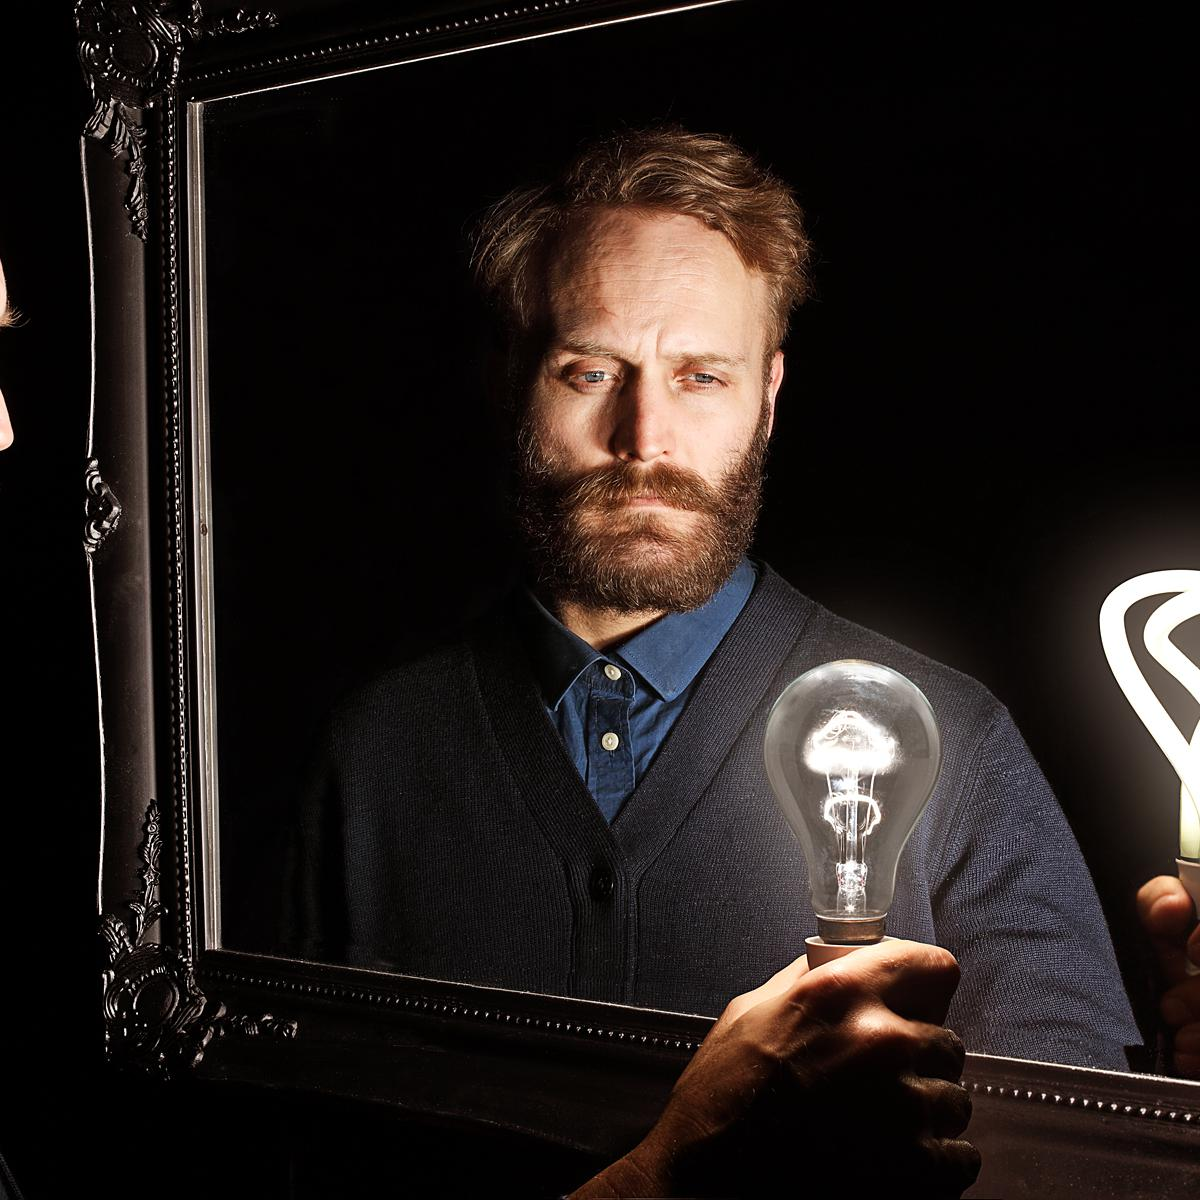 Creative Photograph of Nicolas Roope by Julian Hanford